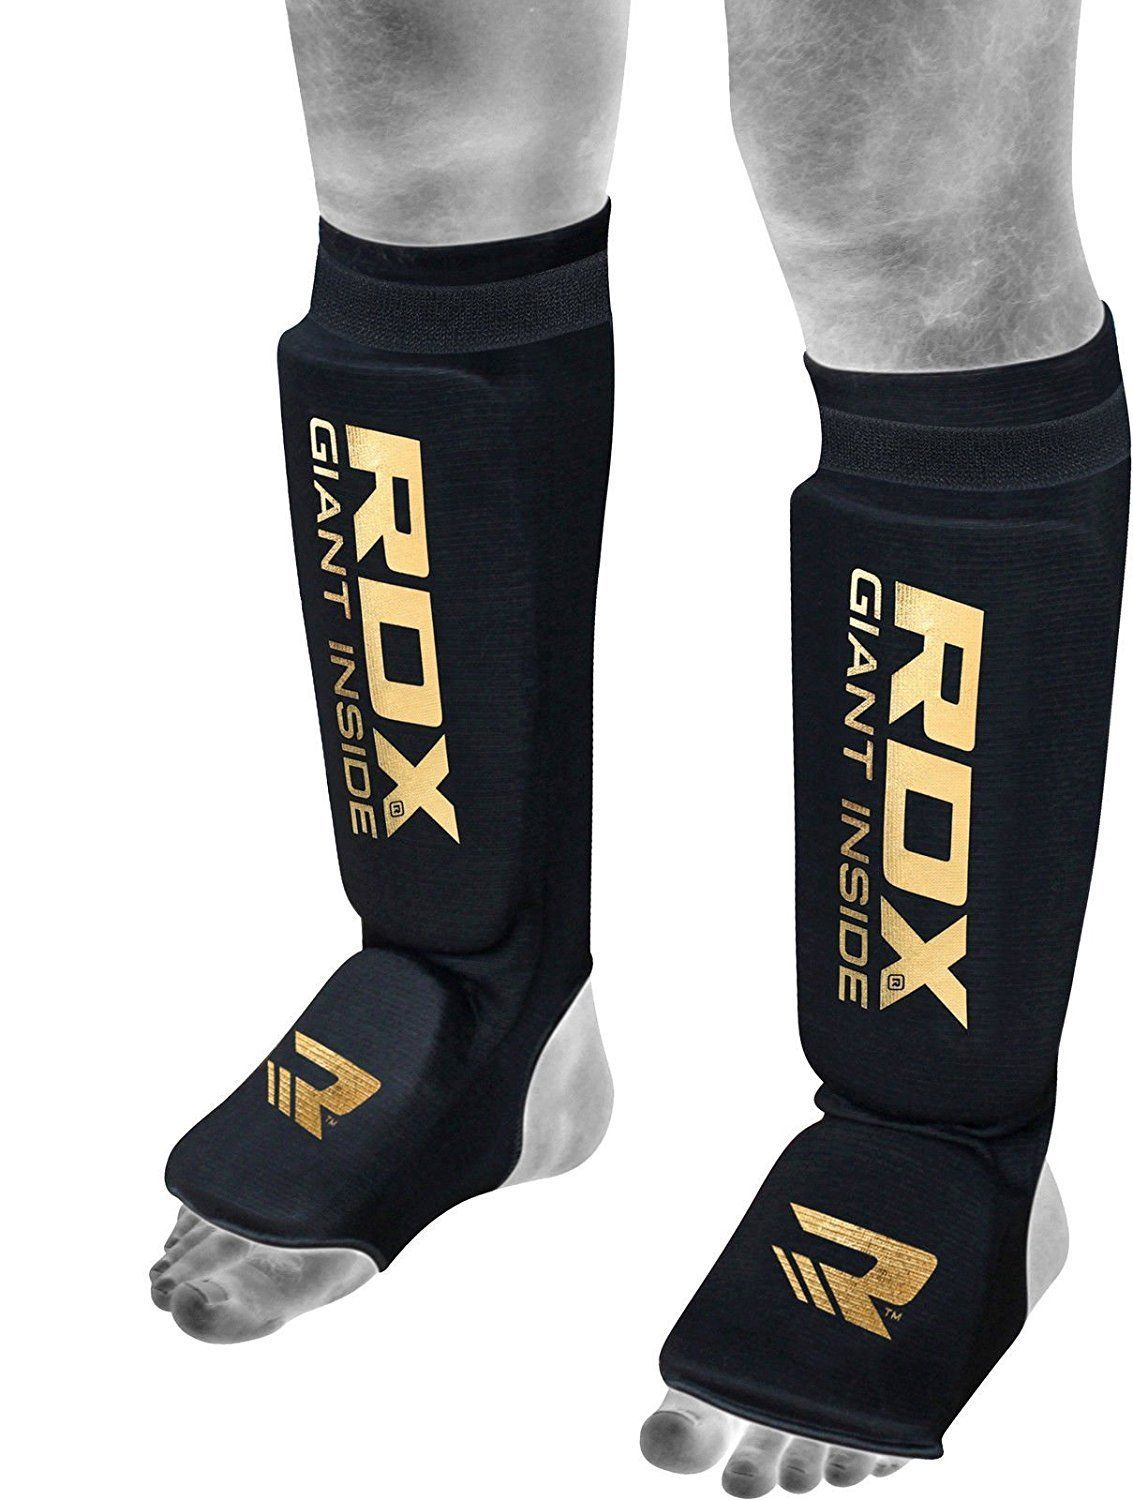 Shin Instep Guards Kickboxing muay thai MMA shin pad Leg /& Foot Protector Black